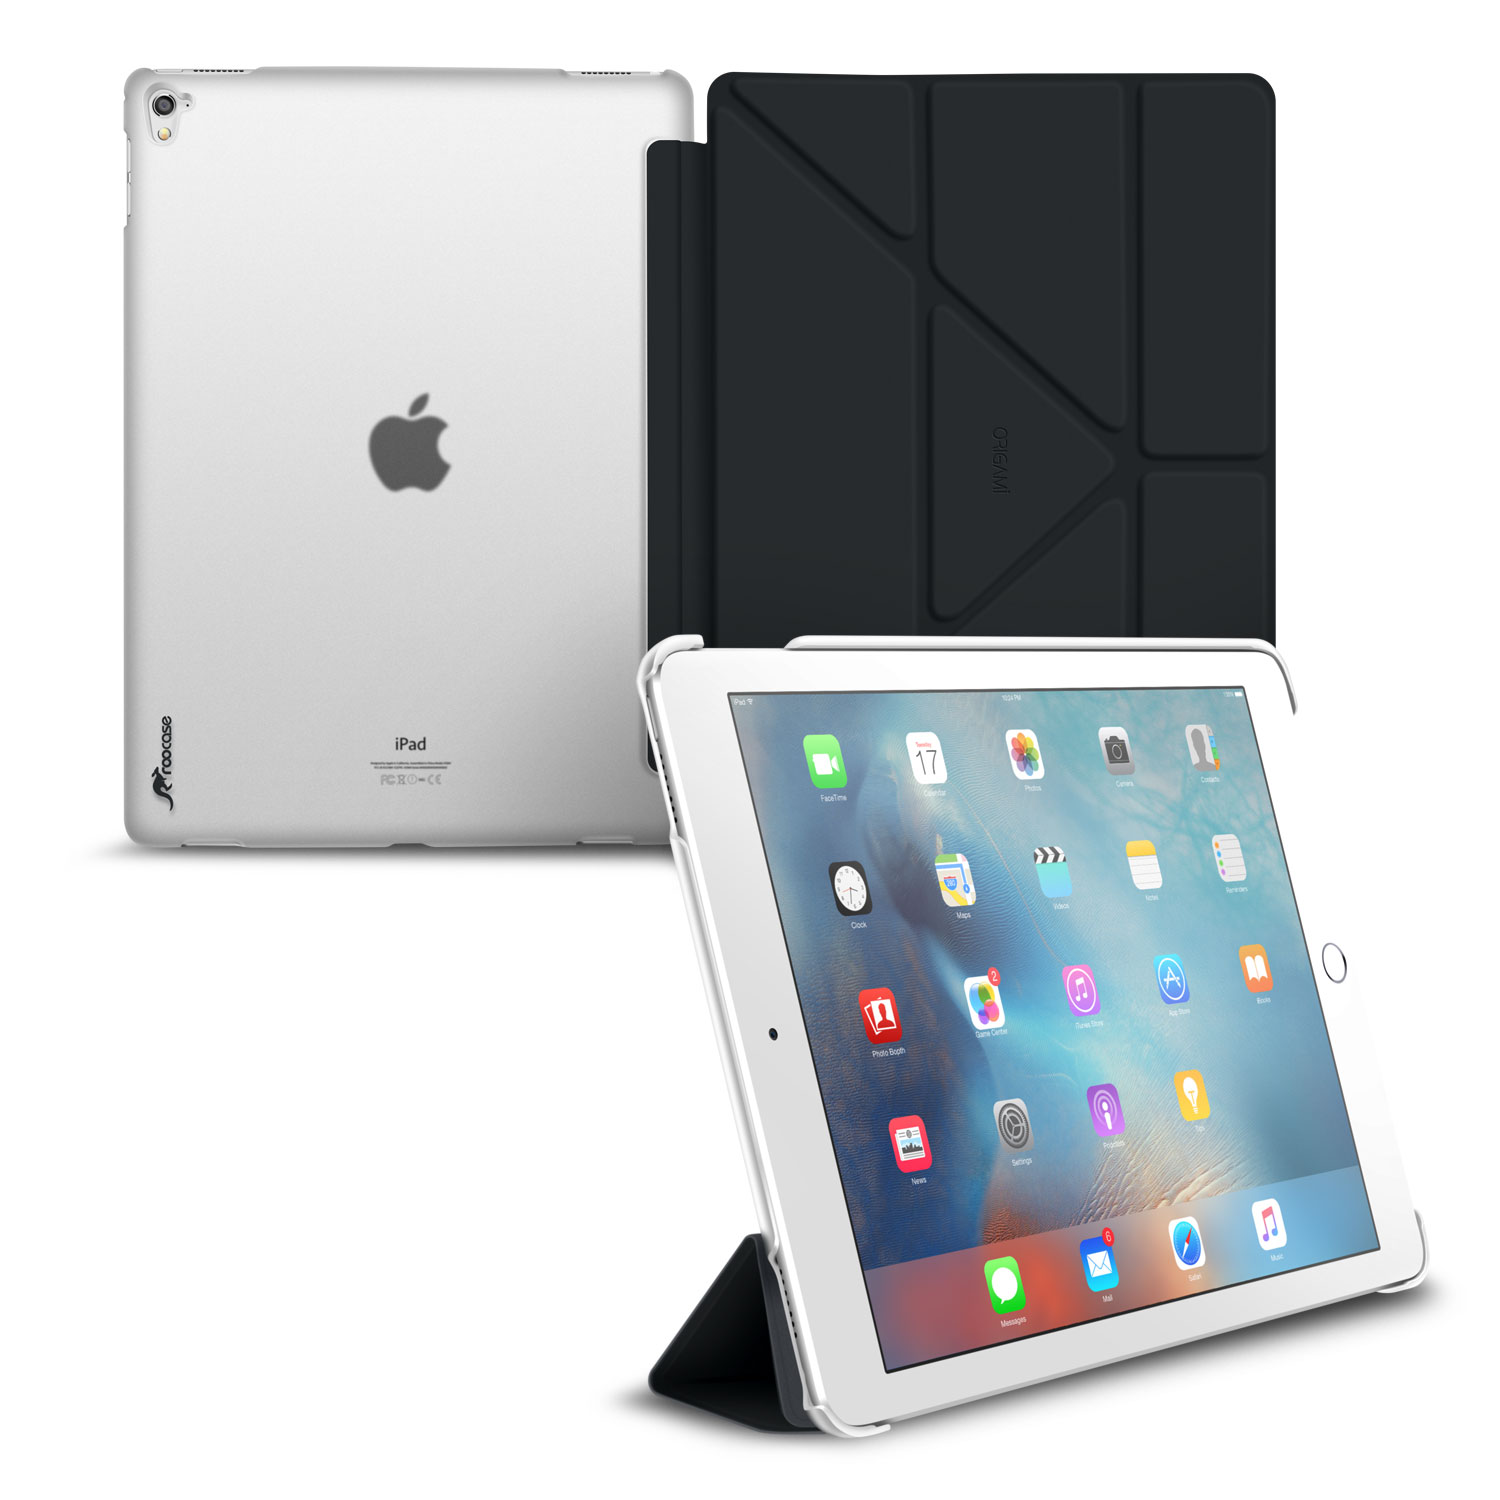 iPad Pro 9.7 Case, Apple Folio roocase Origami Slim Shell